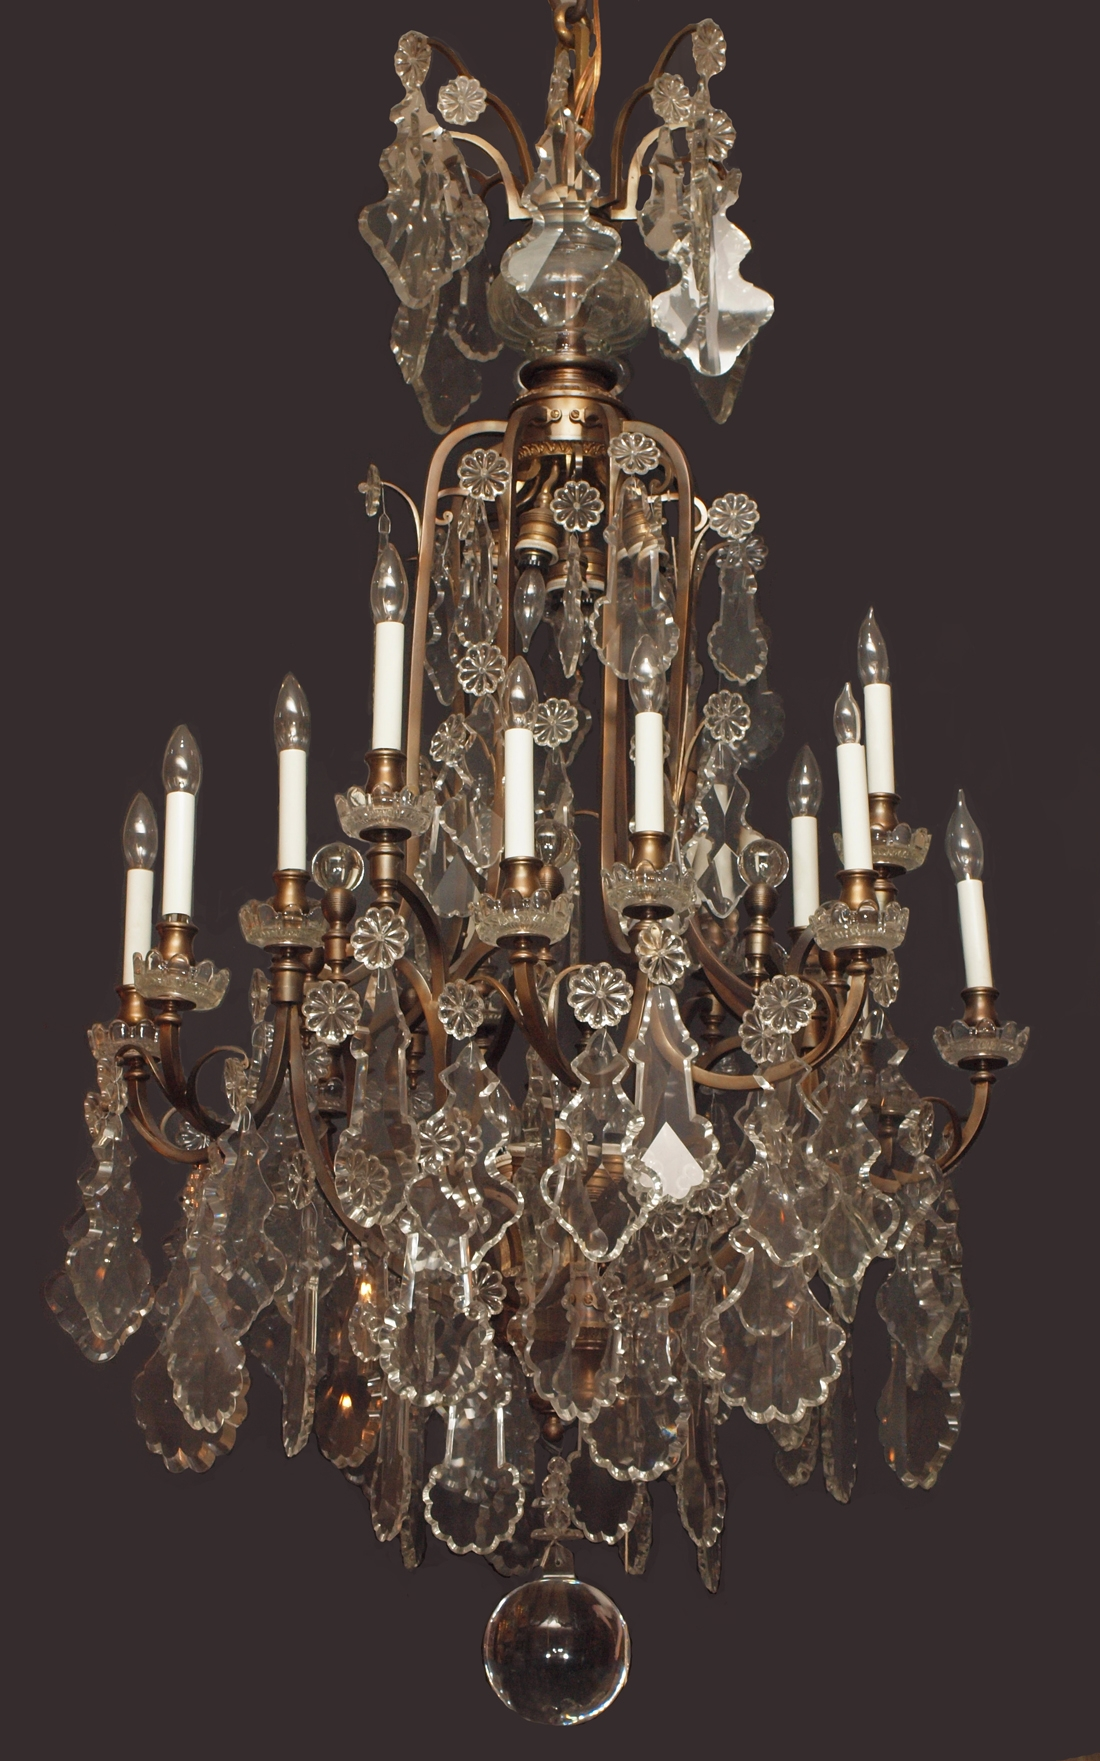 Chandeliers Antiques Chandeliers And French Pertaining To French Antique Chandeliers (Image 8 of 15)